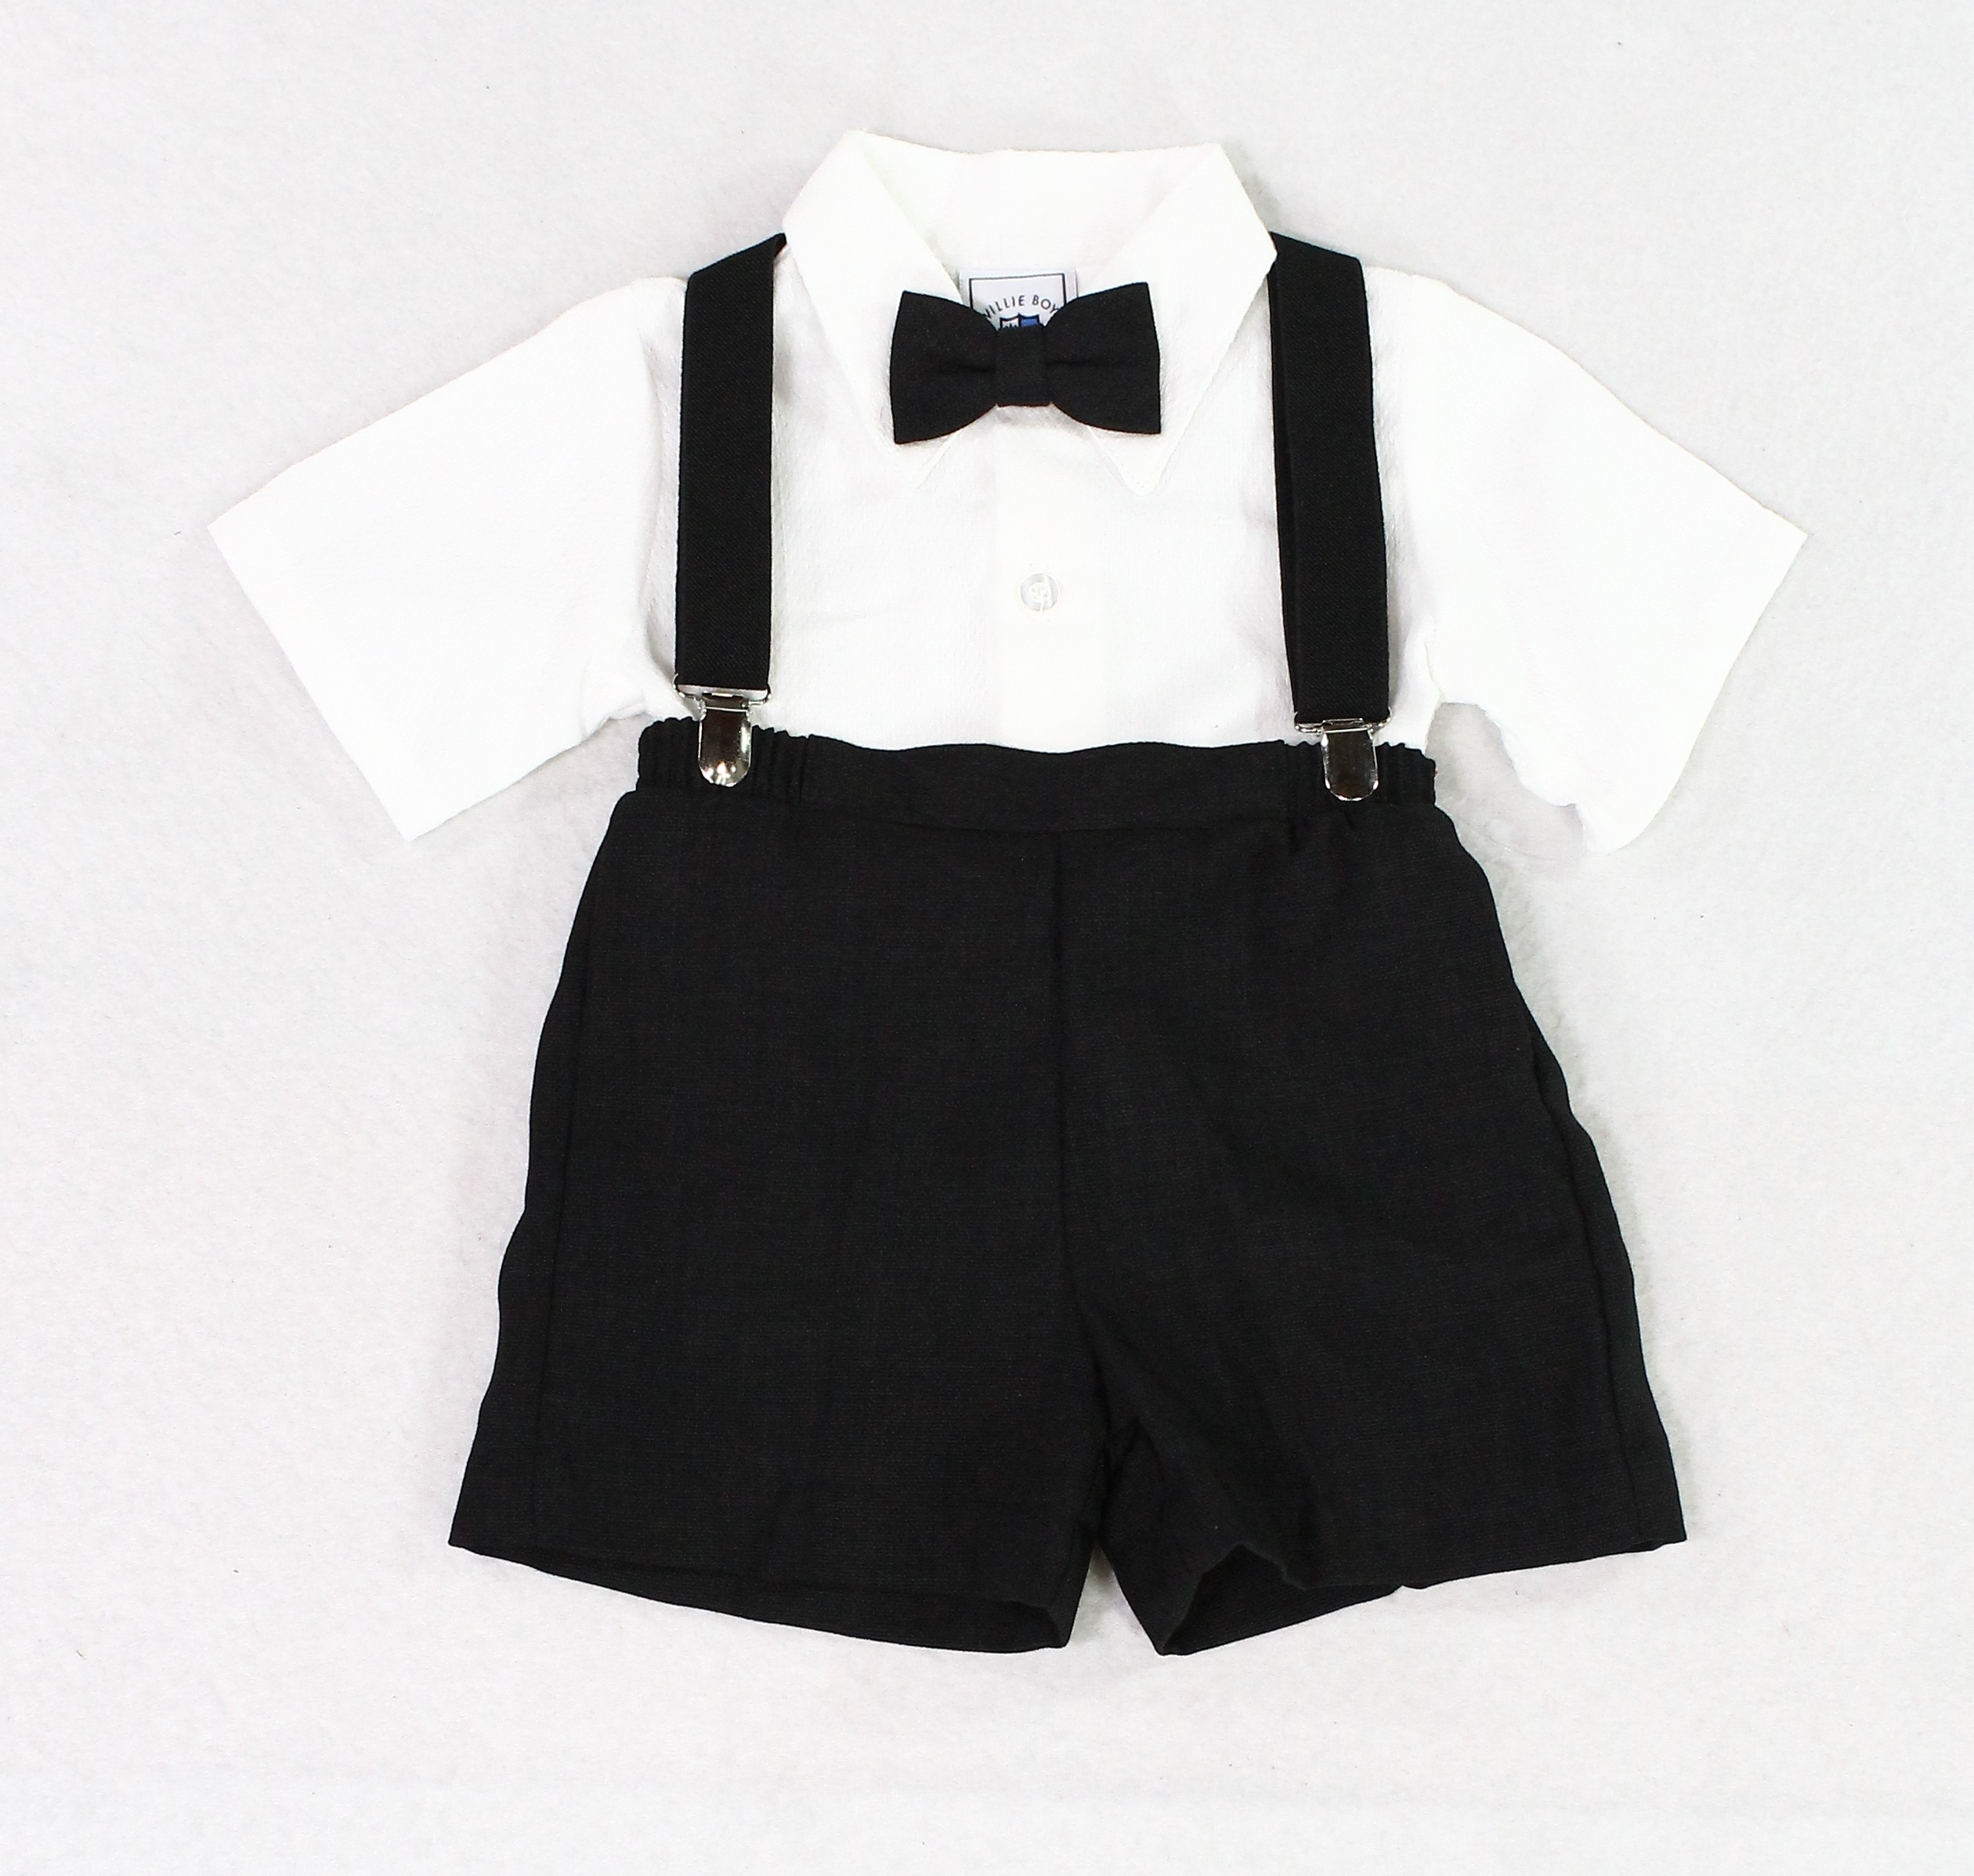 71059f9a07760 Willie Boy White Baby Boys 24 Months Suspenders Outfit